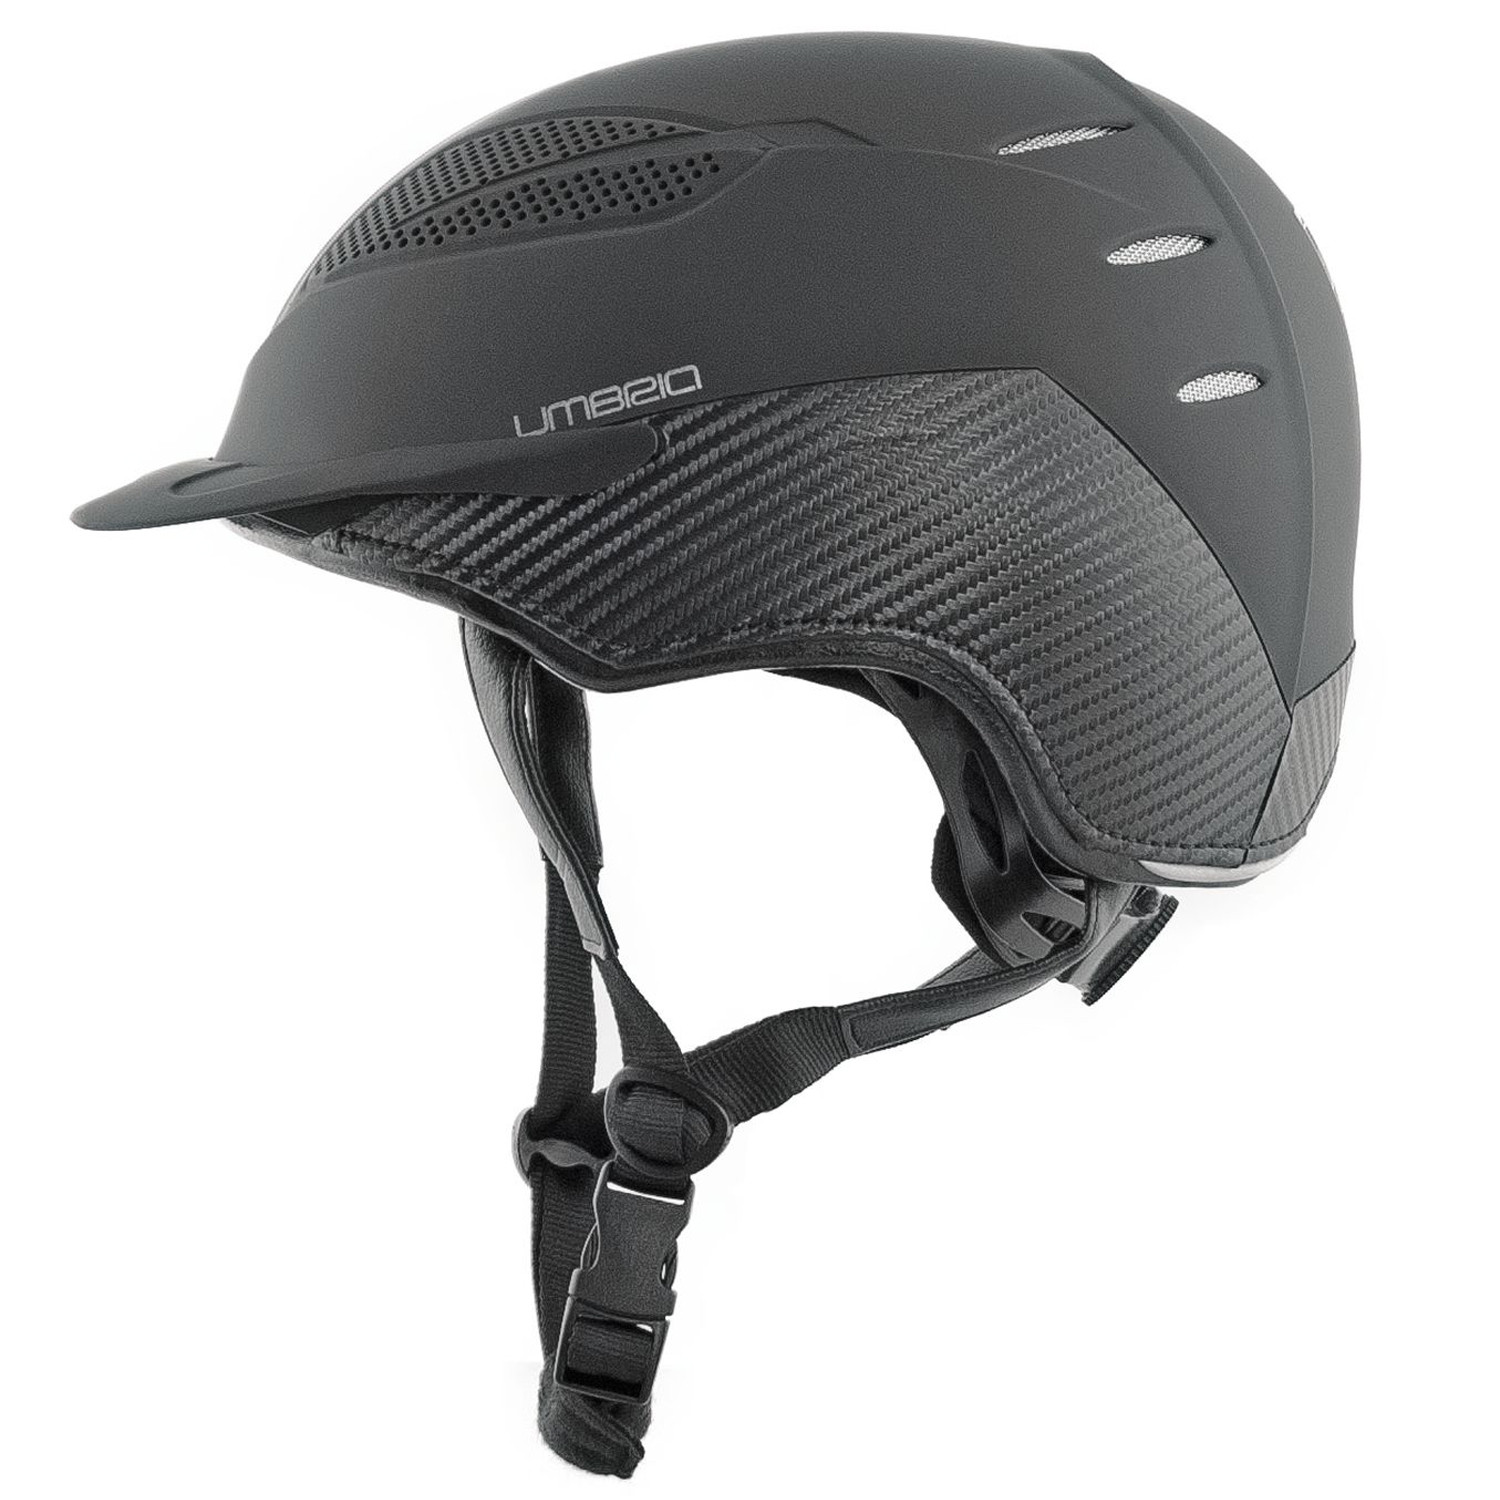 Stealth Ultra-Light Helmet